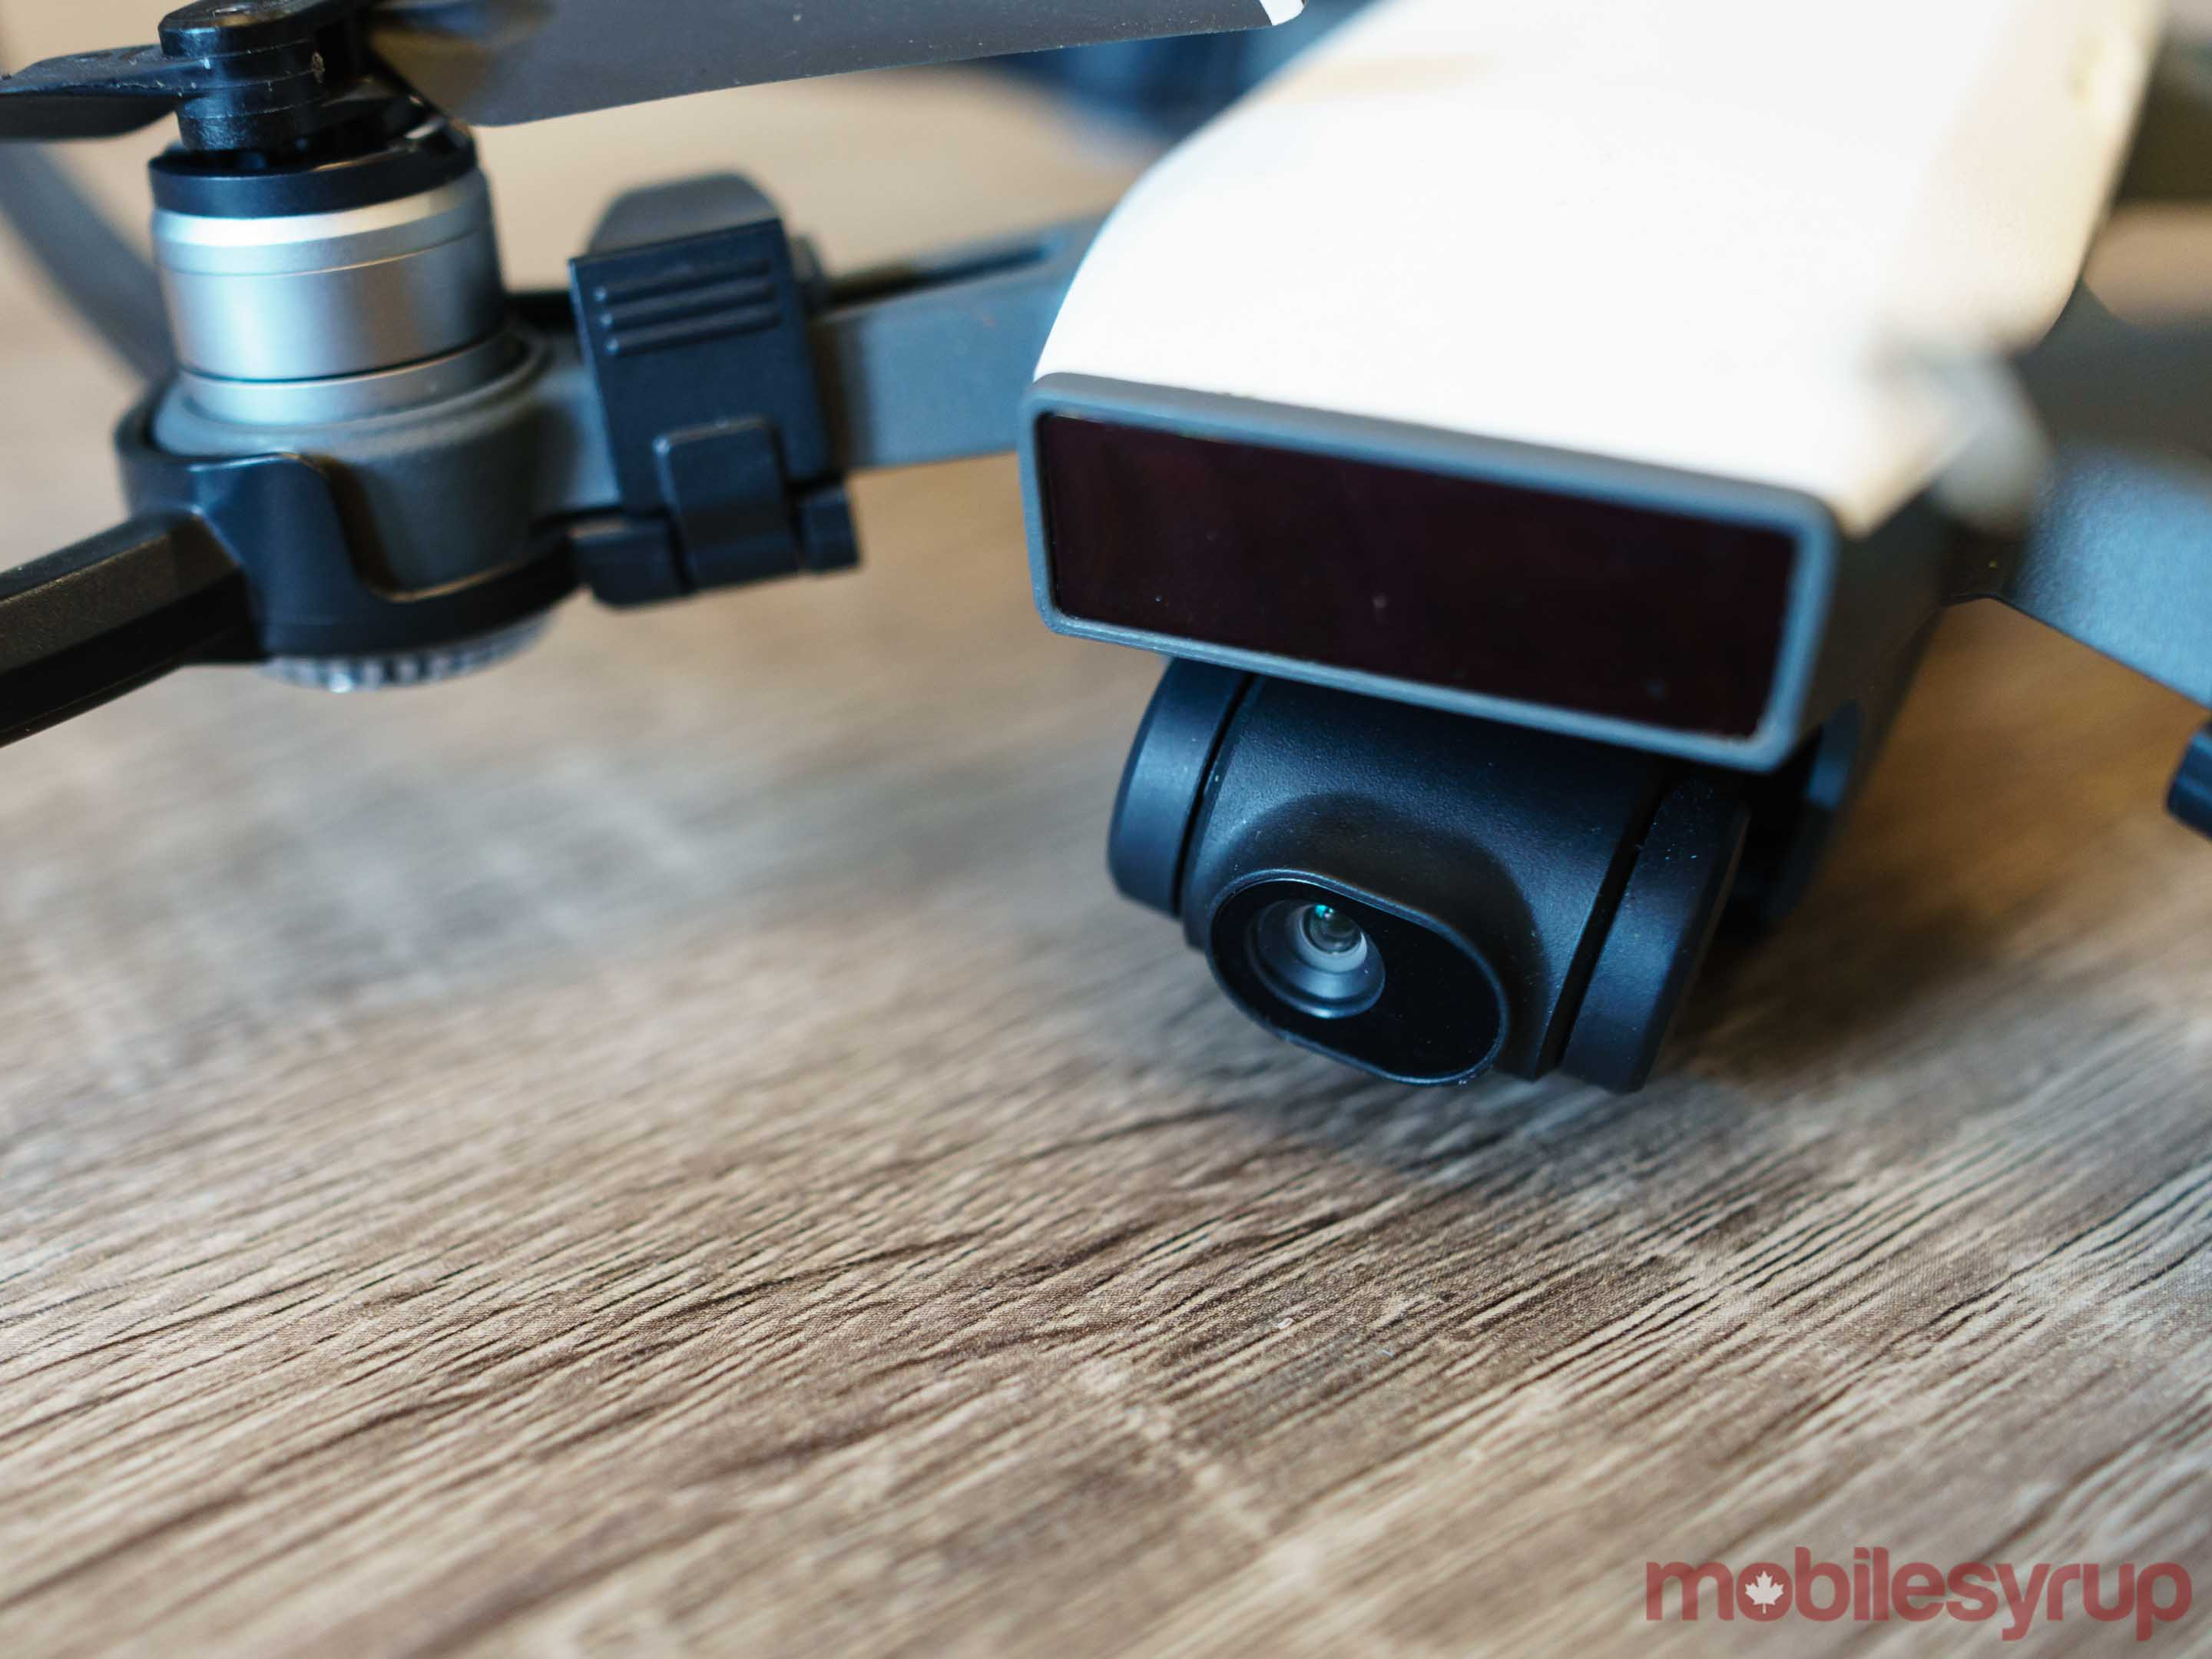 Close up of DJI Spark two-axis gimbal